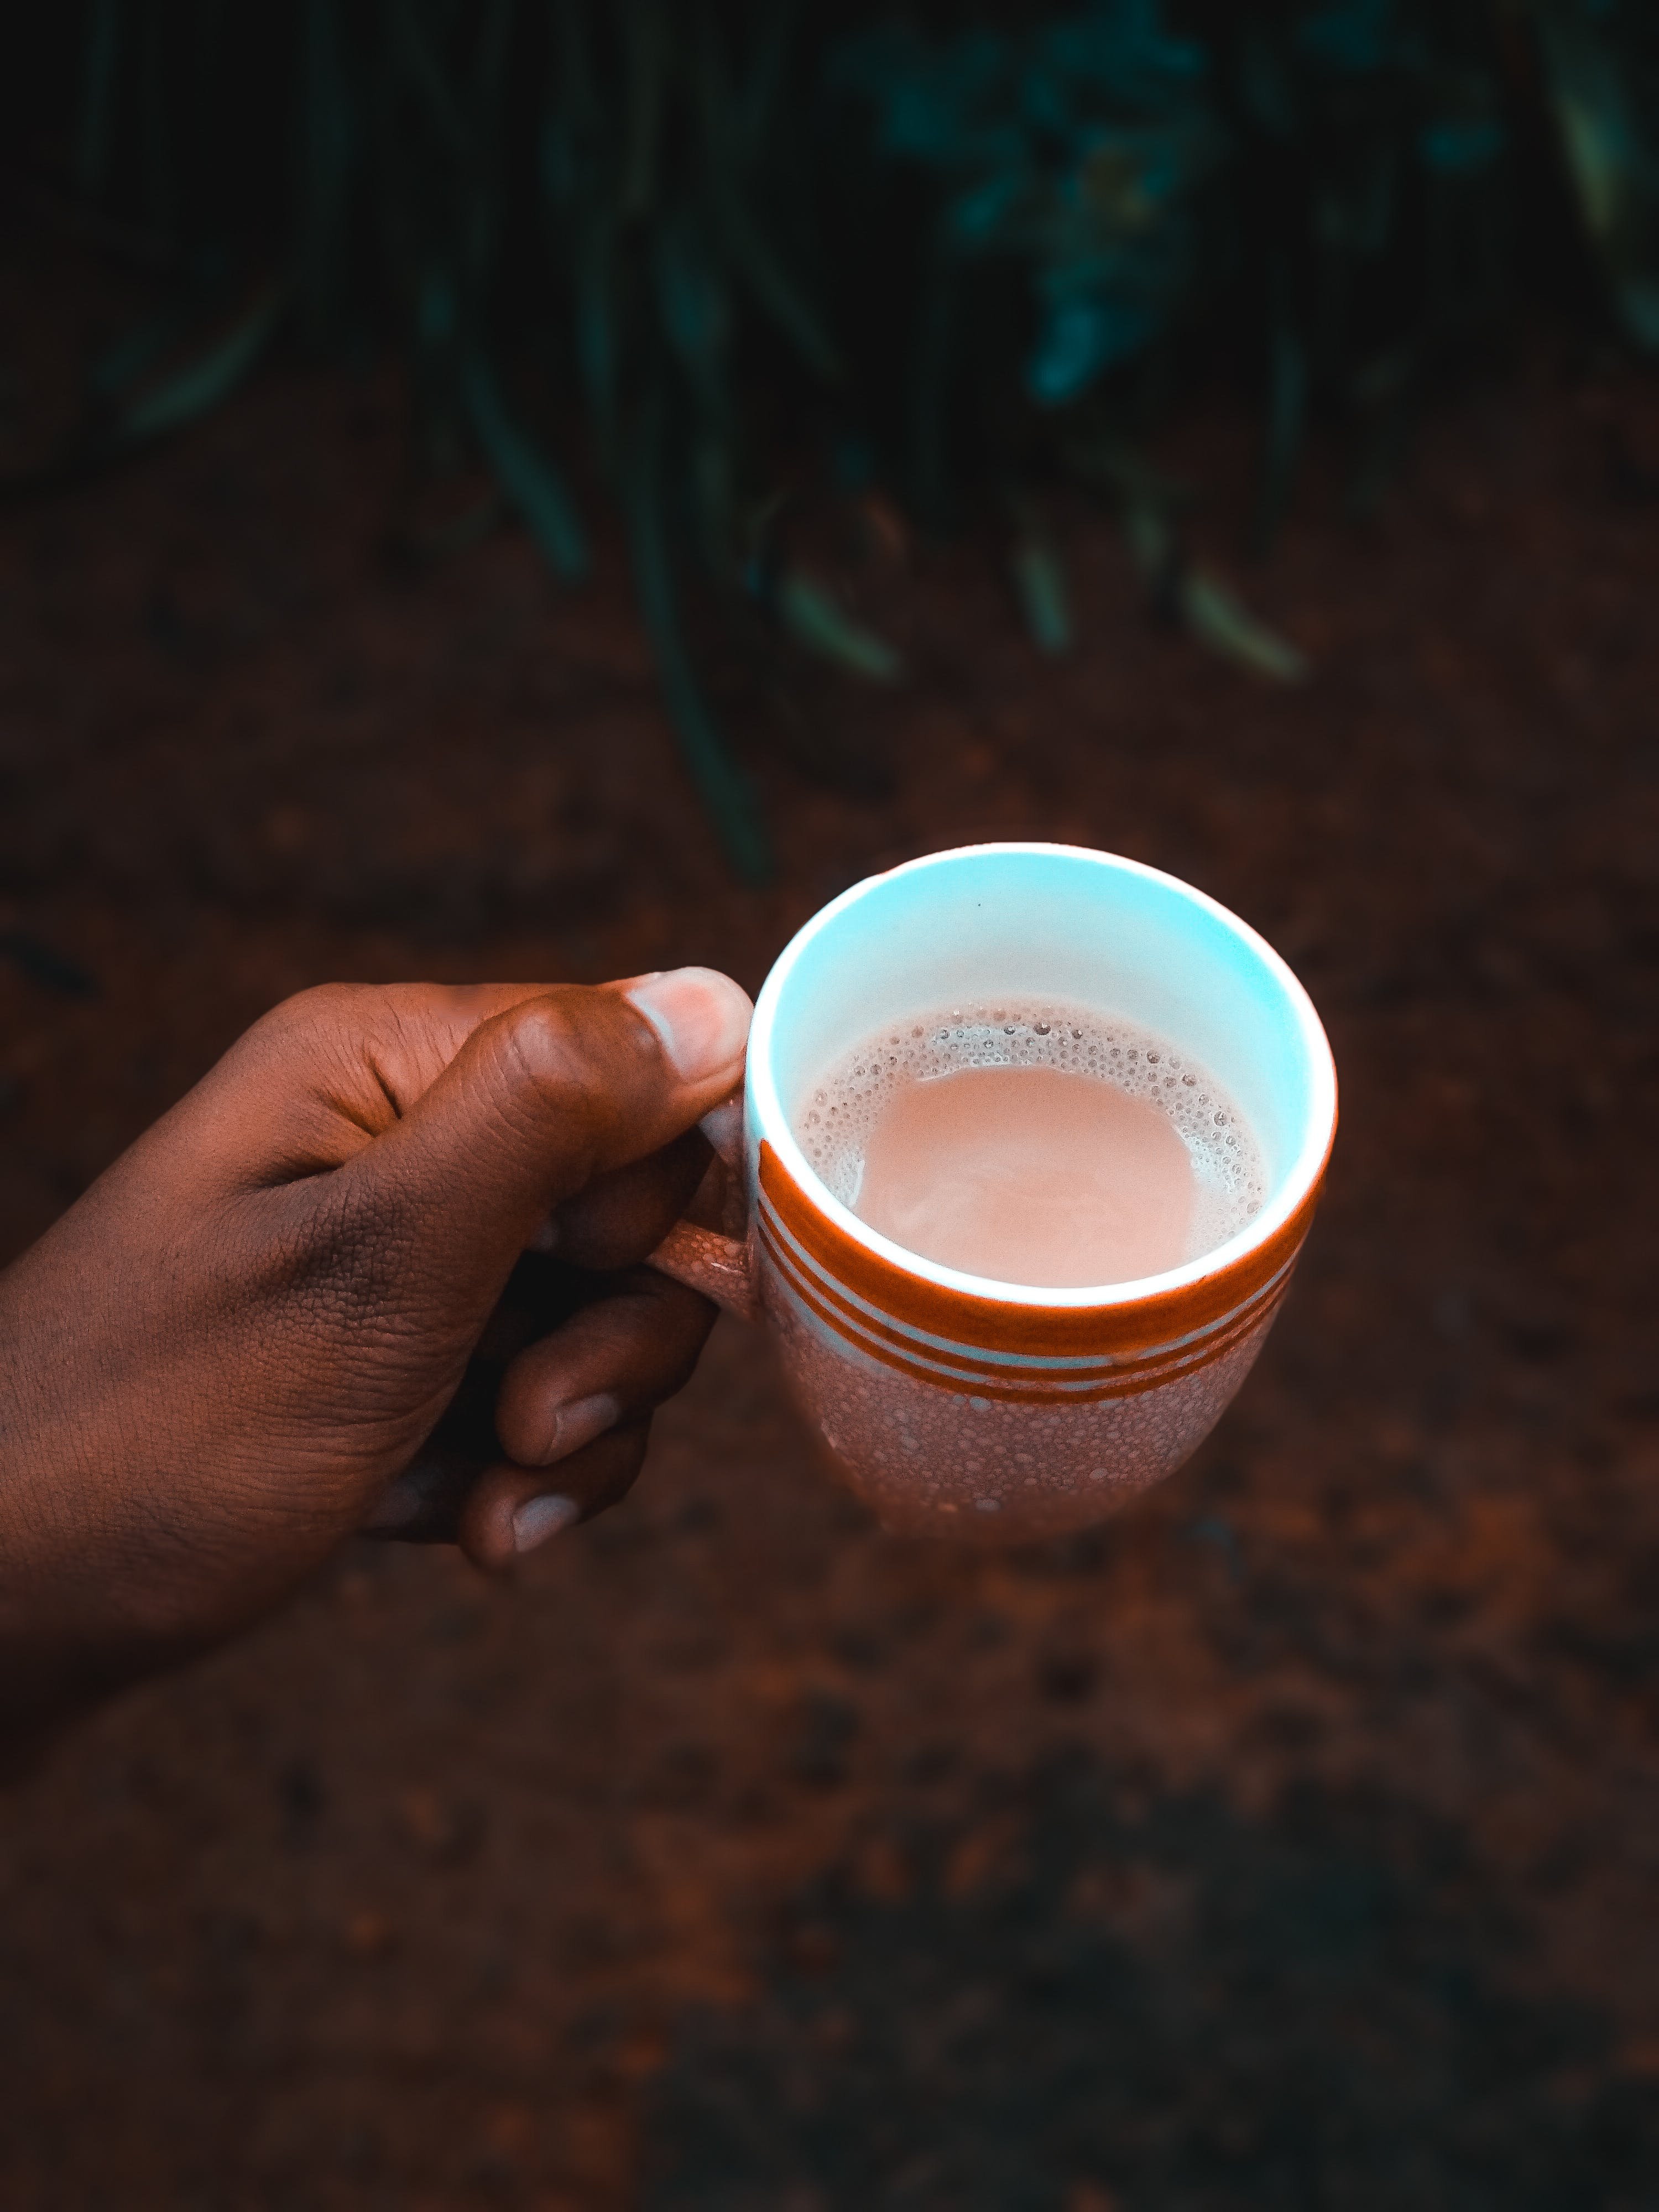 Close-Up Photo of Person Holding Cup